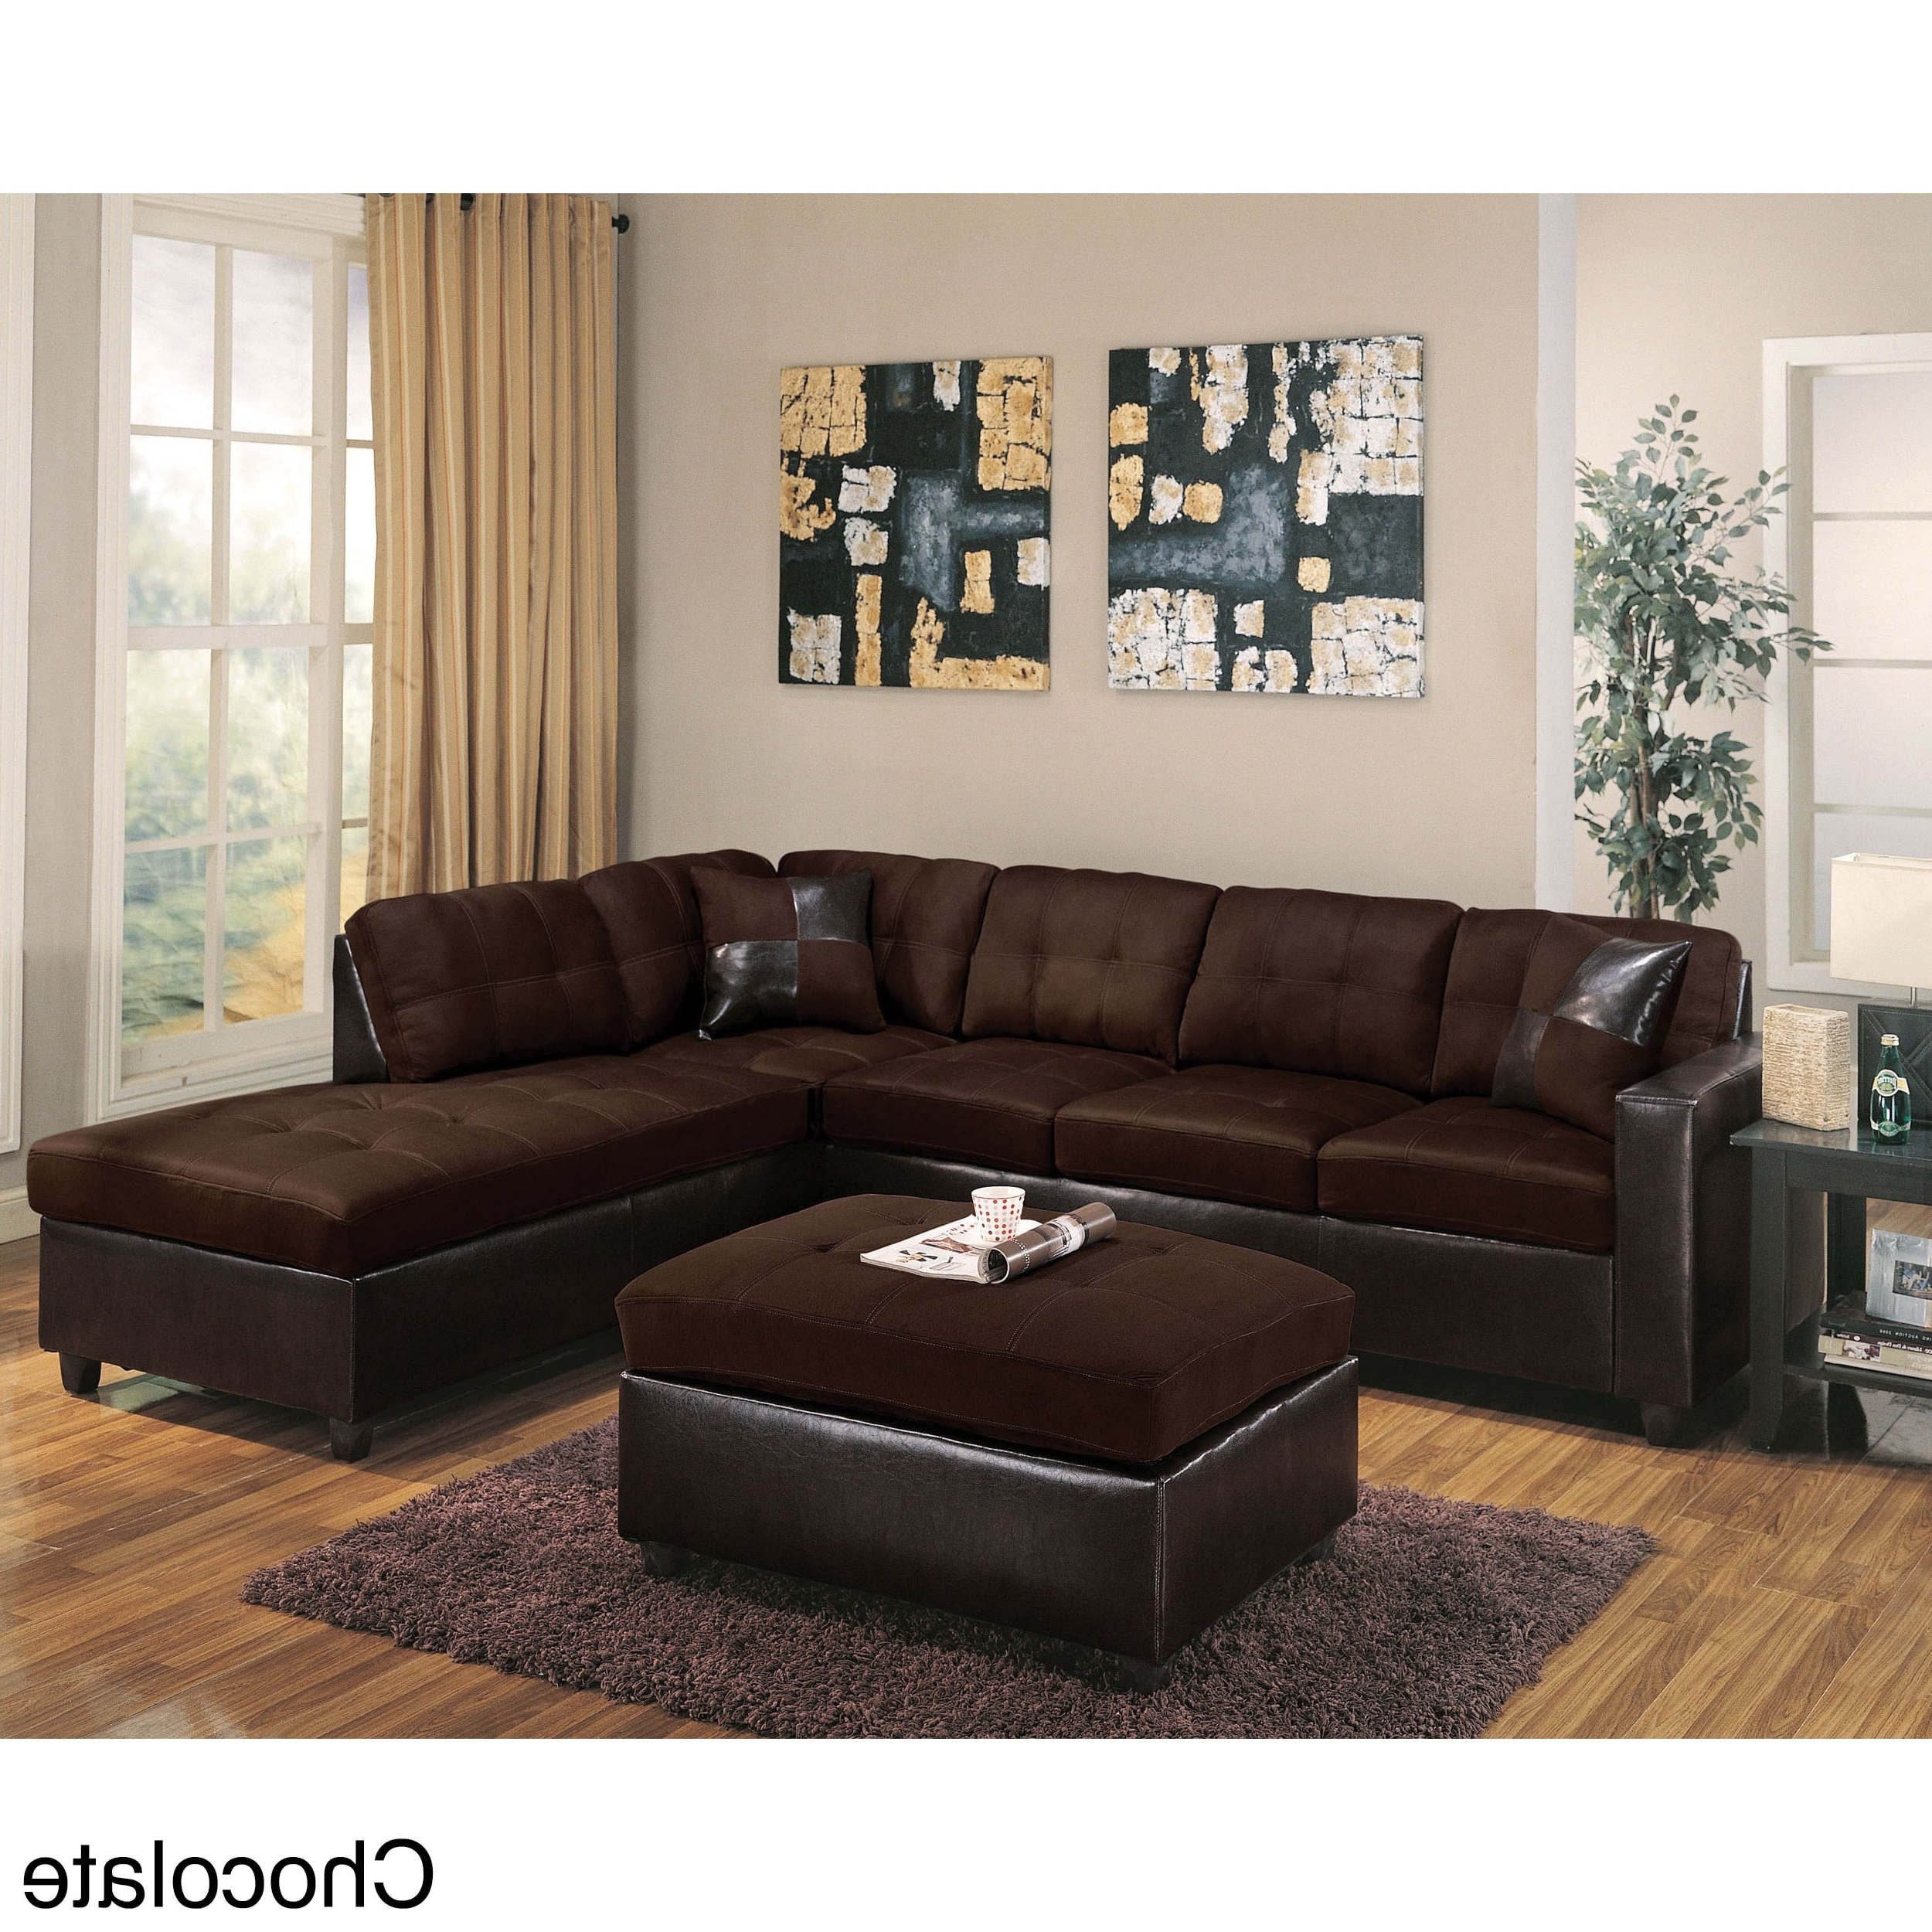 Milano Reversible Sectional Sofa In Chocolate Easy Rider And Inside Well Known Chocolate Sectional Sofas (View 10 of 20)